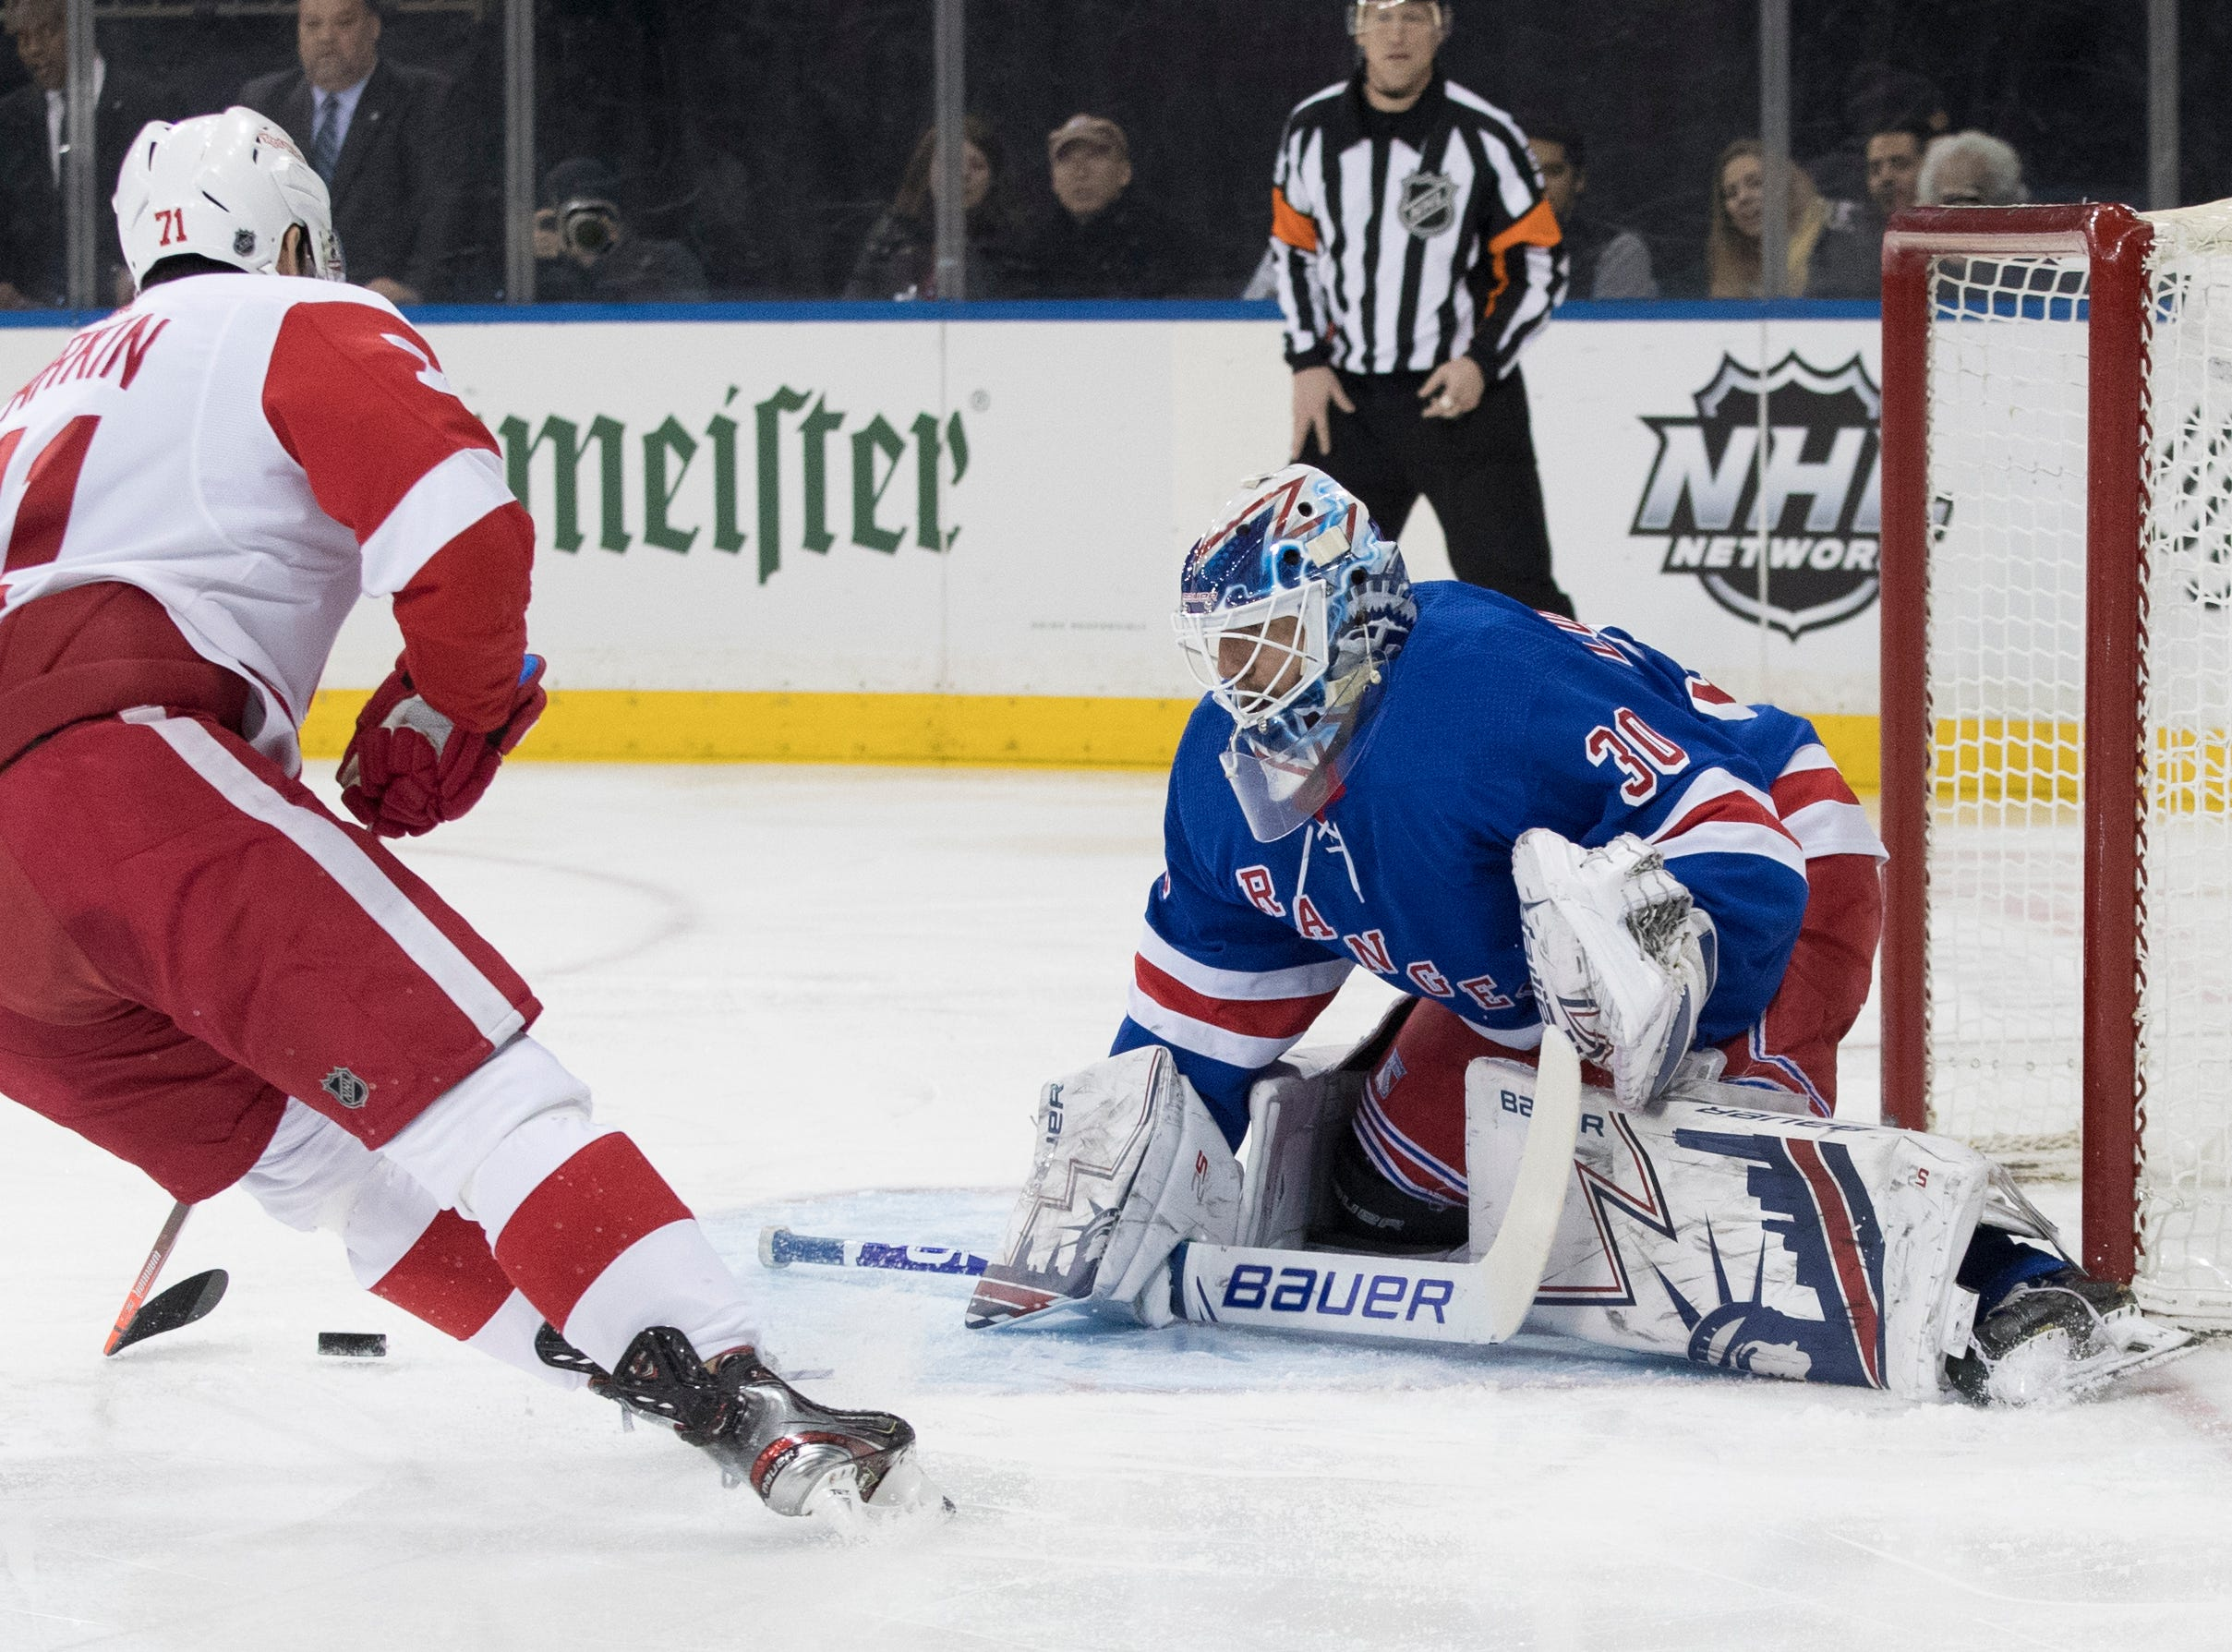 New York Rangers goaltender Henrik Lundqvist (30) makes the save against Detroit Red Wings center Dylan Larkin (71) during the first period.